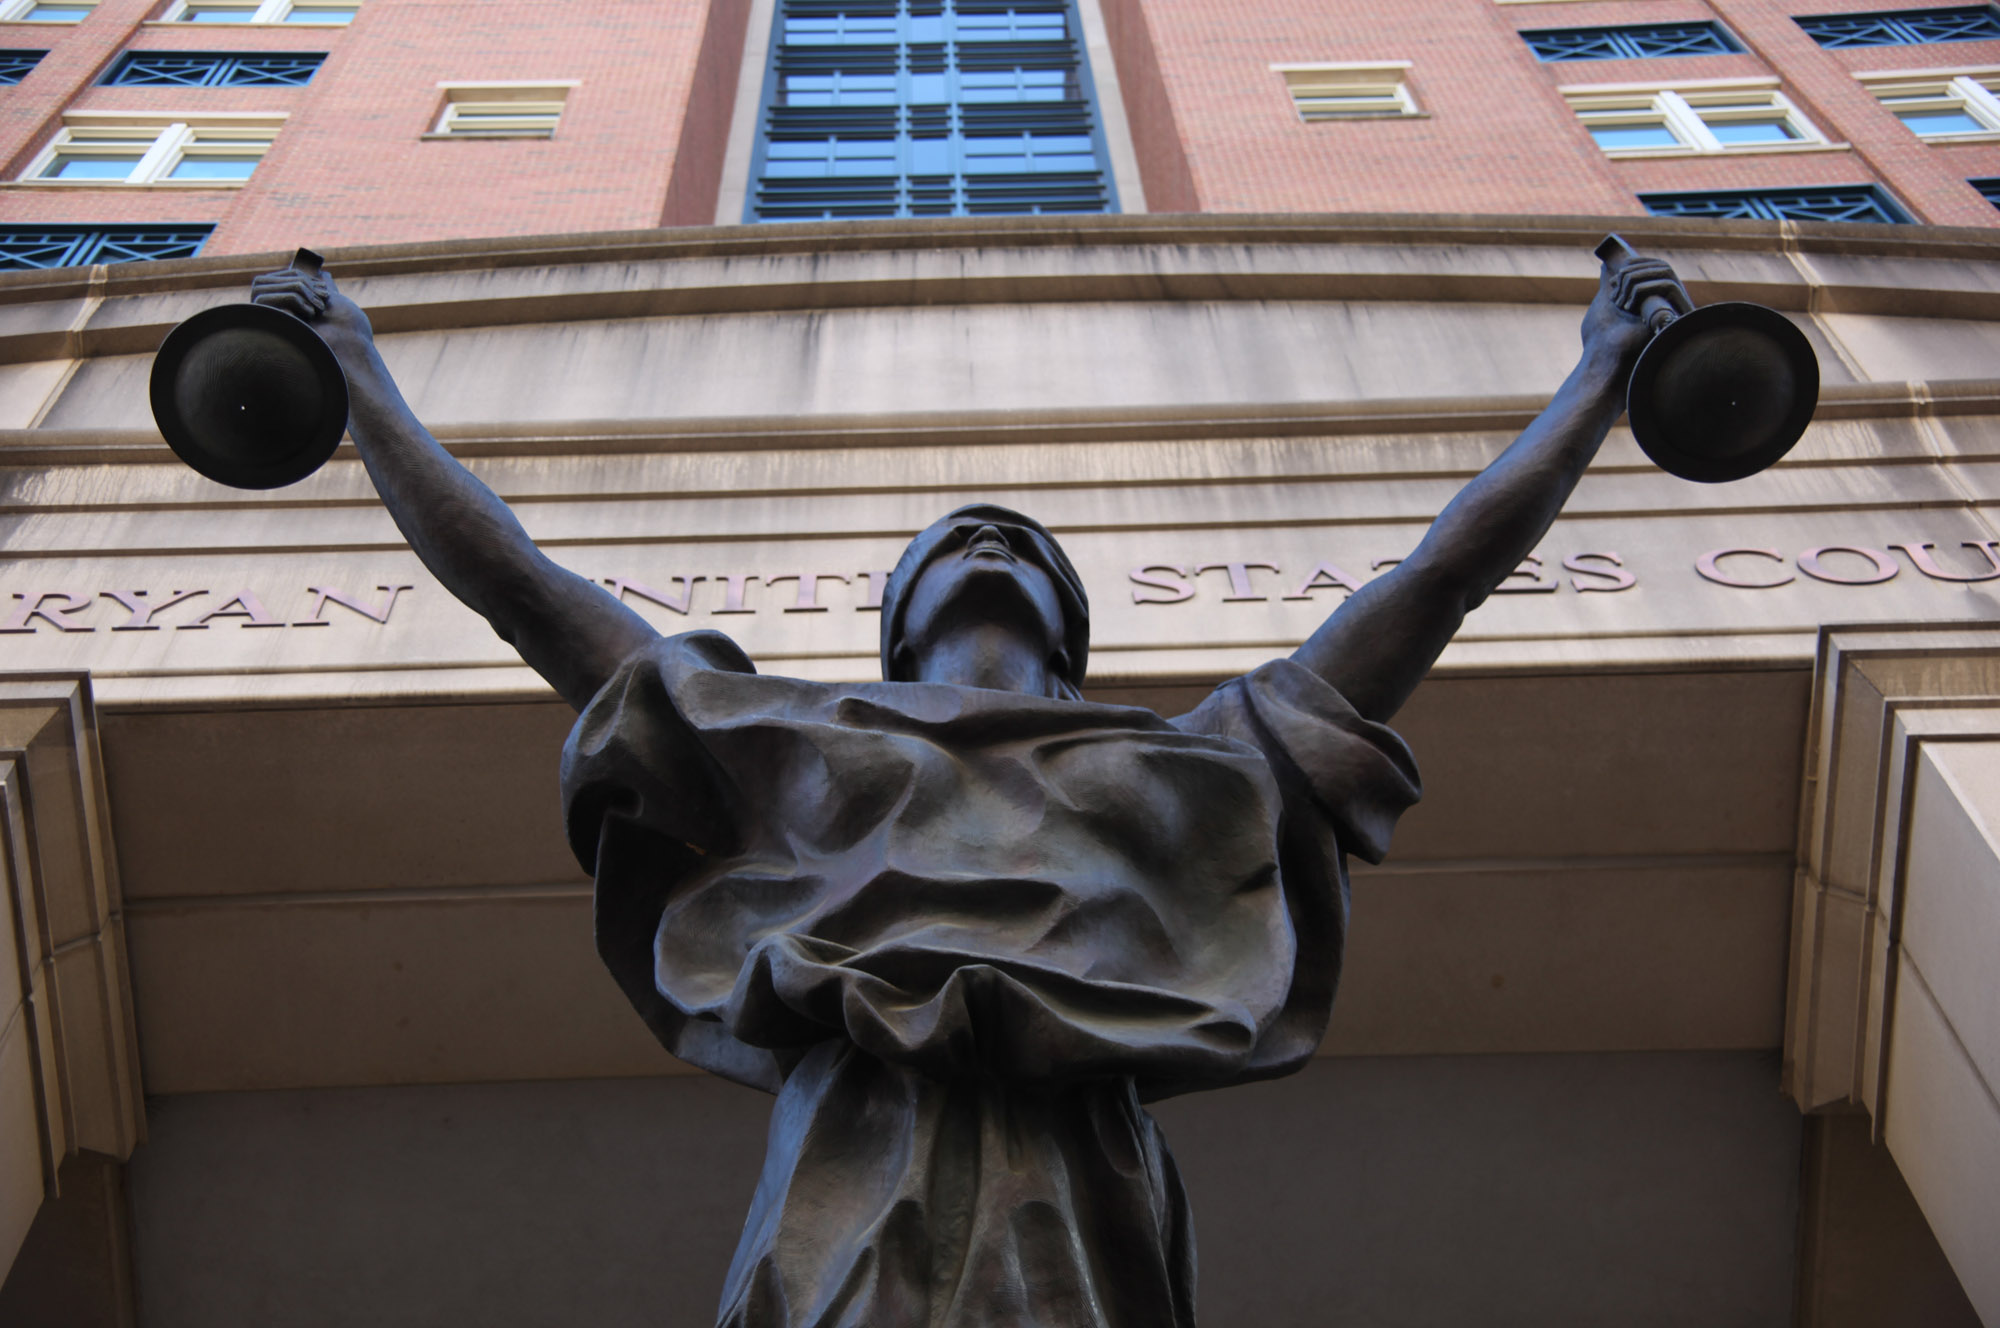 Photograph of the statue outside Albert V Bryan Federal District Courthouse in Alexandria, Virginia.